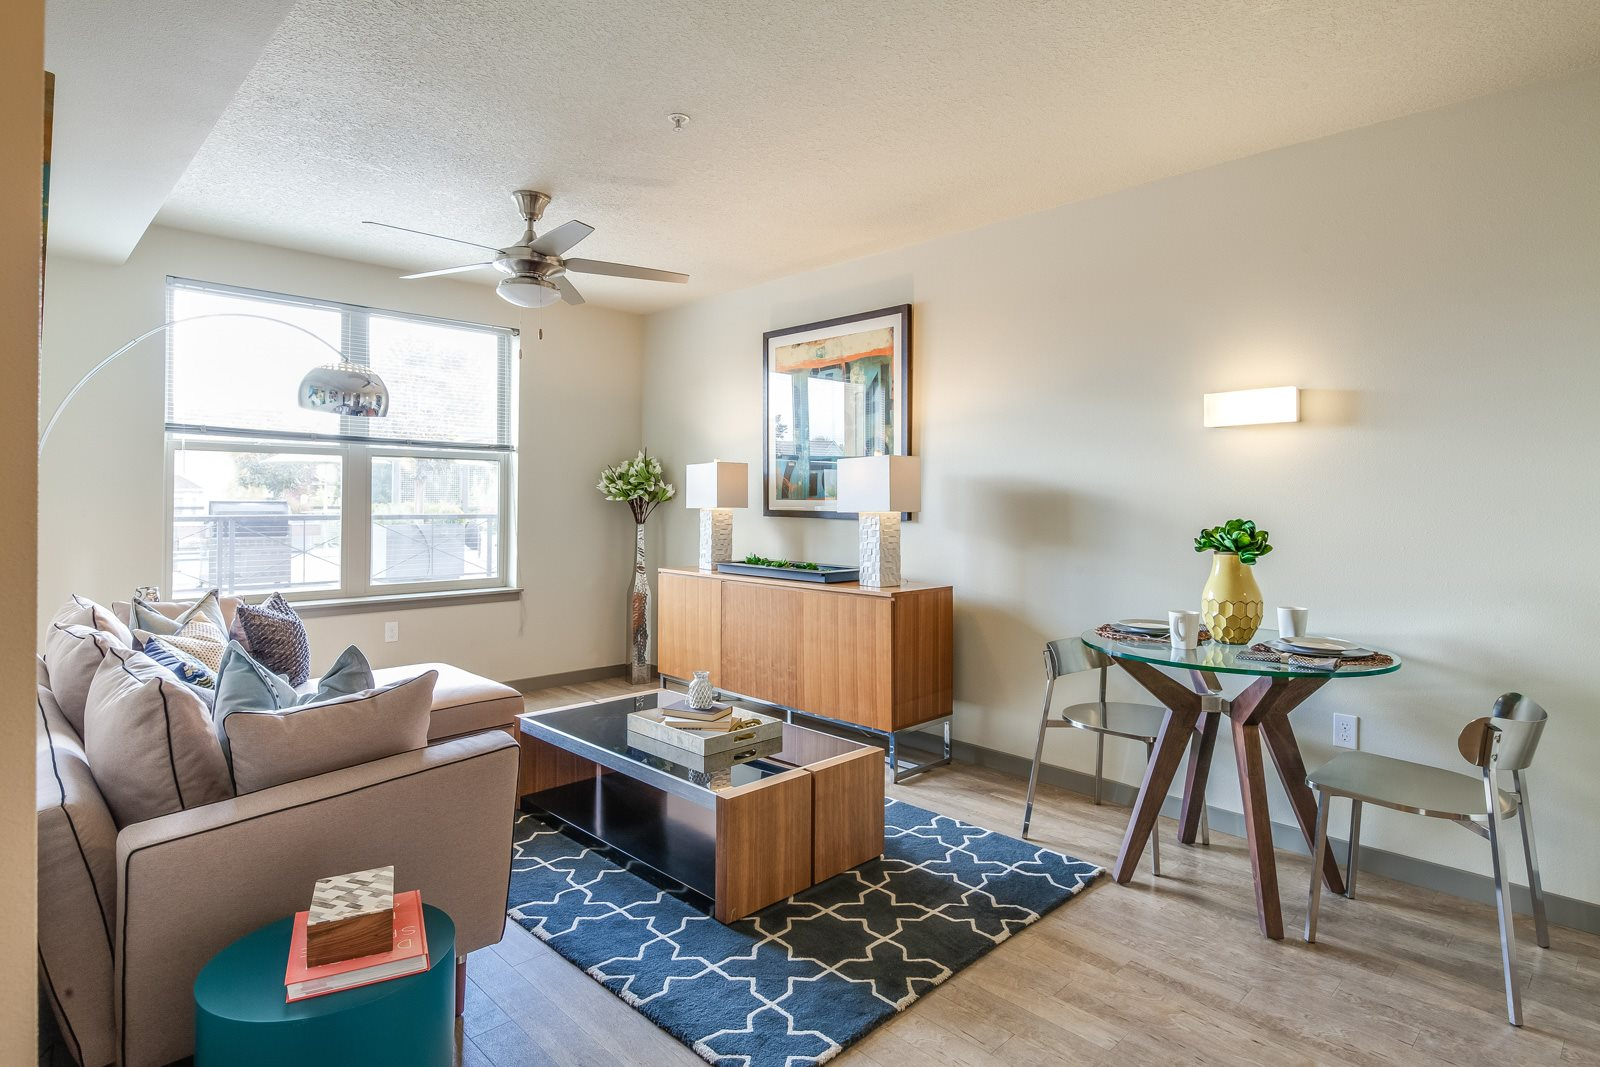 Ceiling Fans in Every Apartment at Platform 14, 1030 NE Orenco Station Pkwy, OR